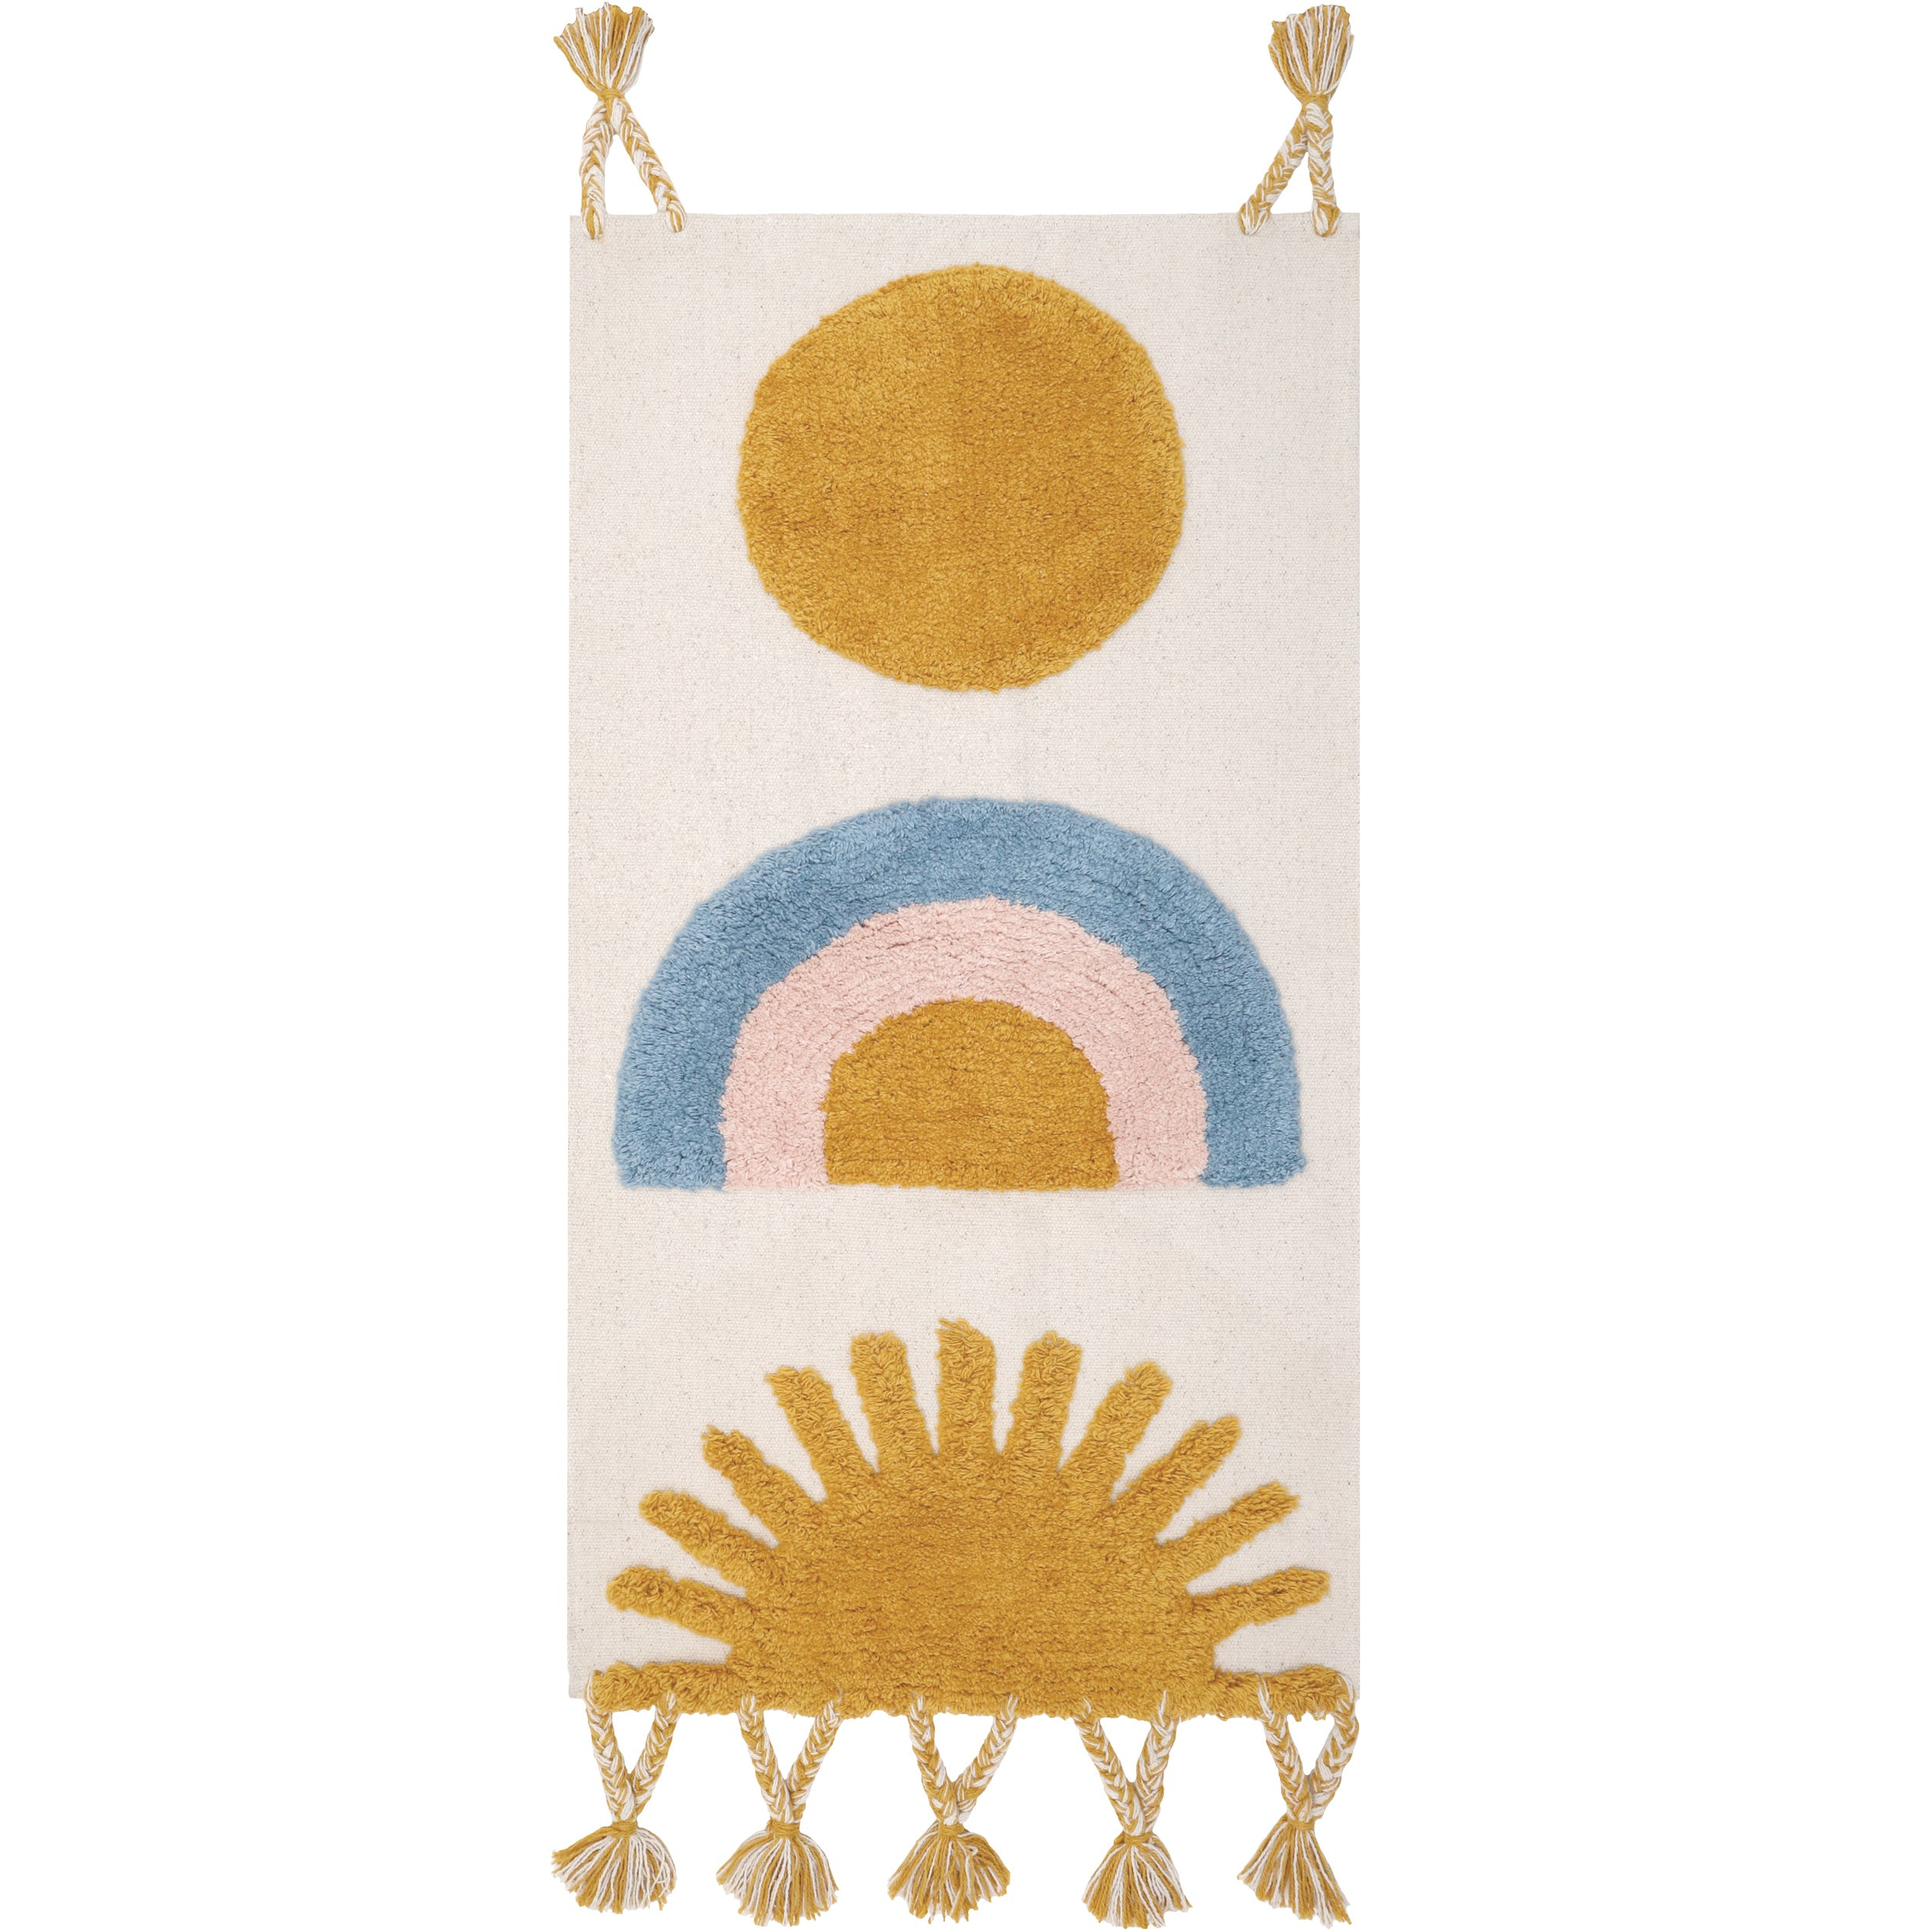 Wall hanging with moon, rainbow and sun | Nattiot 'Murale sunshine'